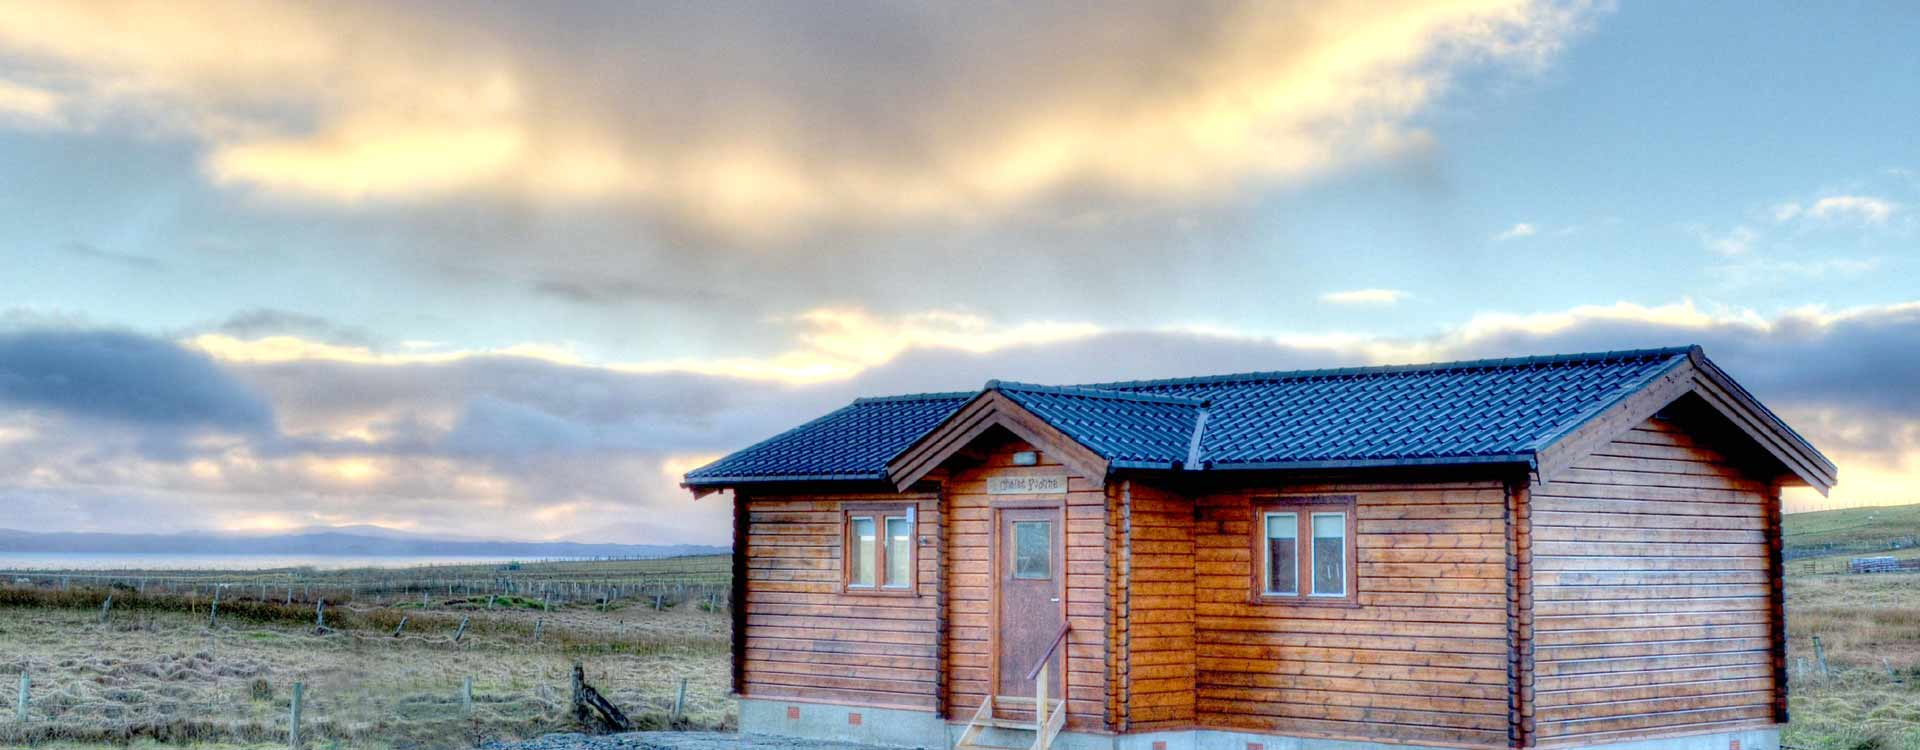 Isle of Lewis Holiday Cottages | Chalet Yvonne